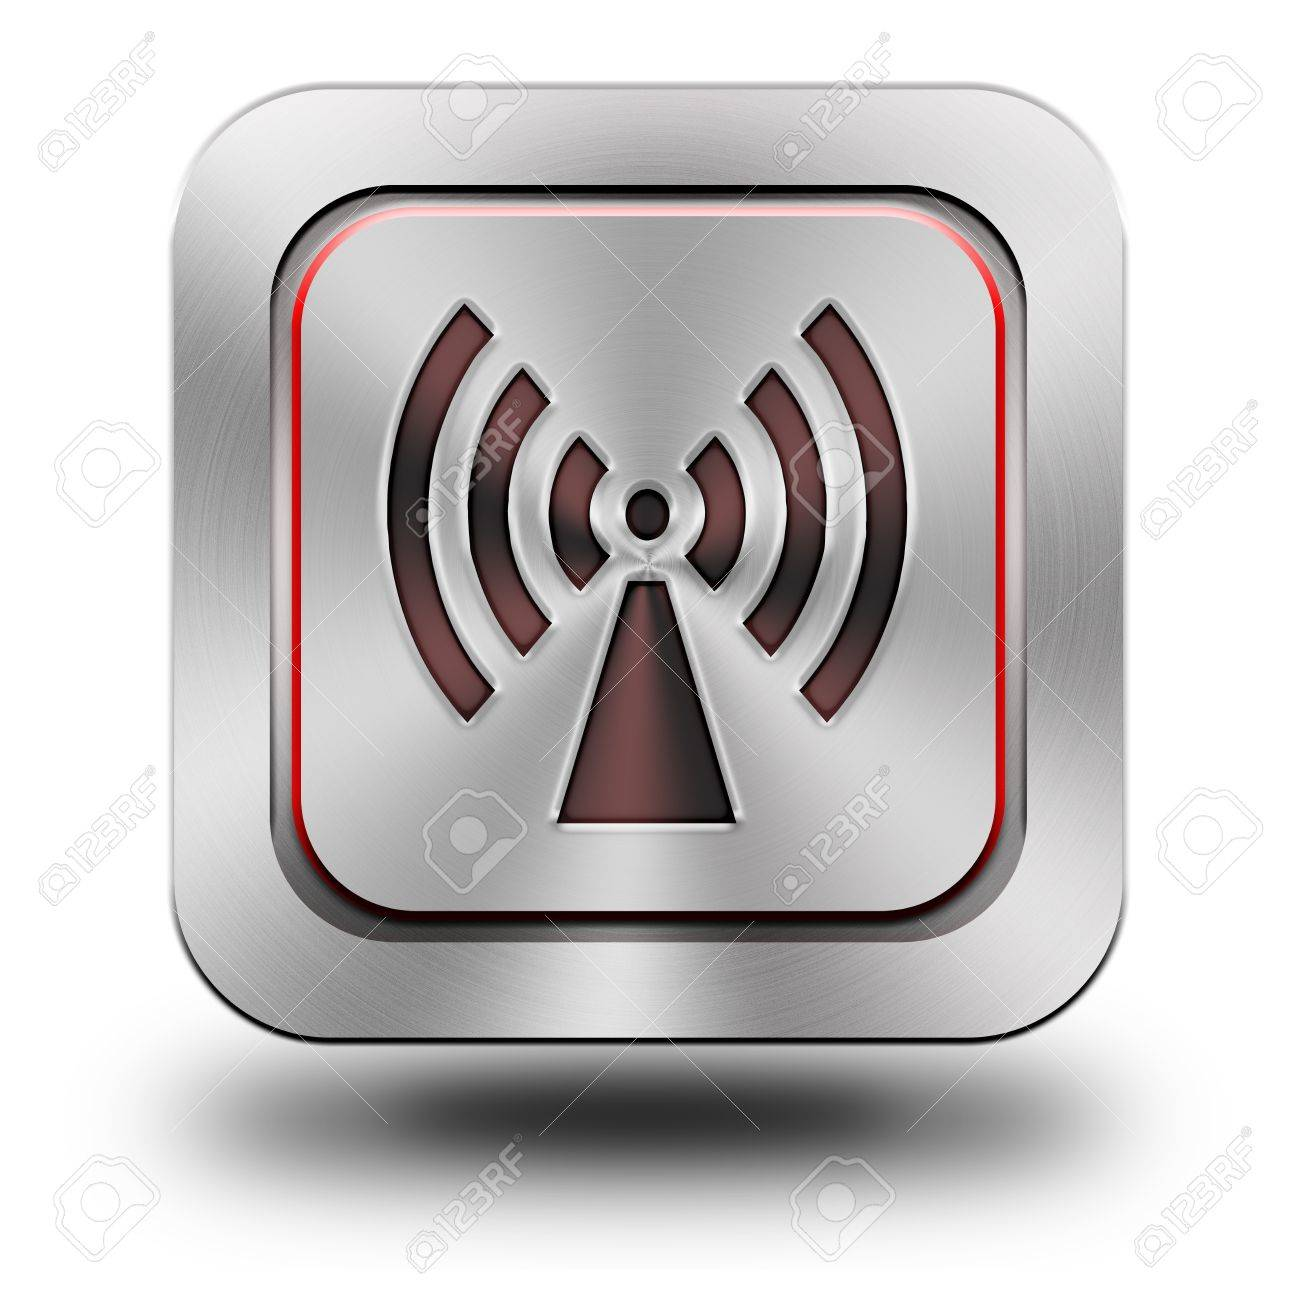 WLAN, aluminum, steel, chromium, glossy, icon, button, sign, icons, buttons, crazy colors - 23951445